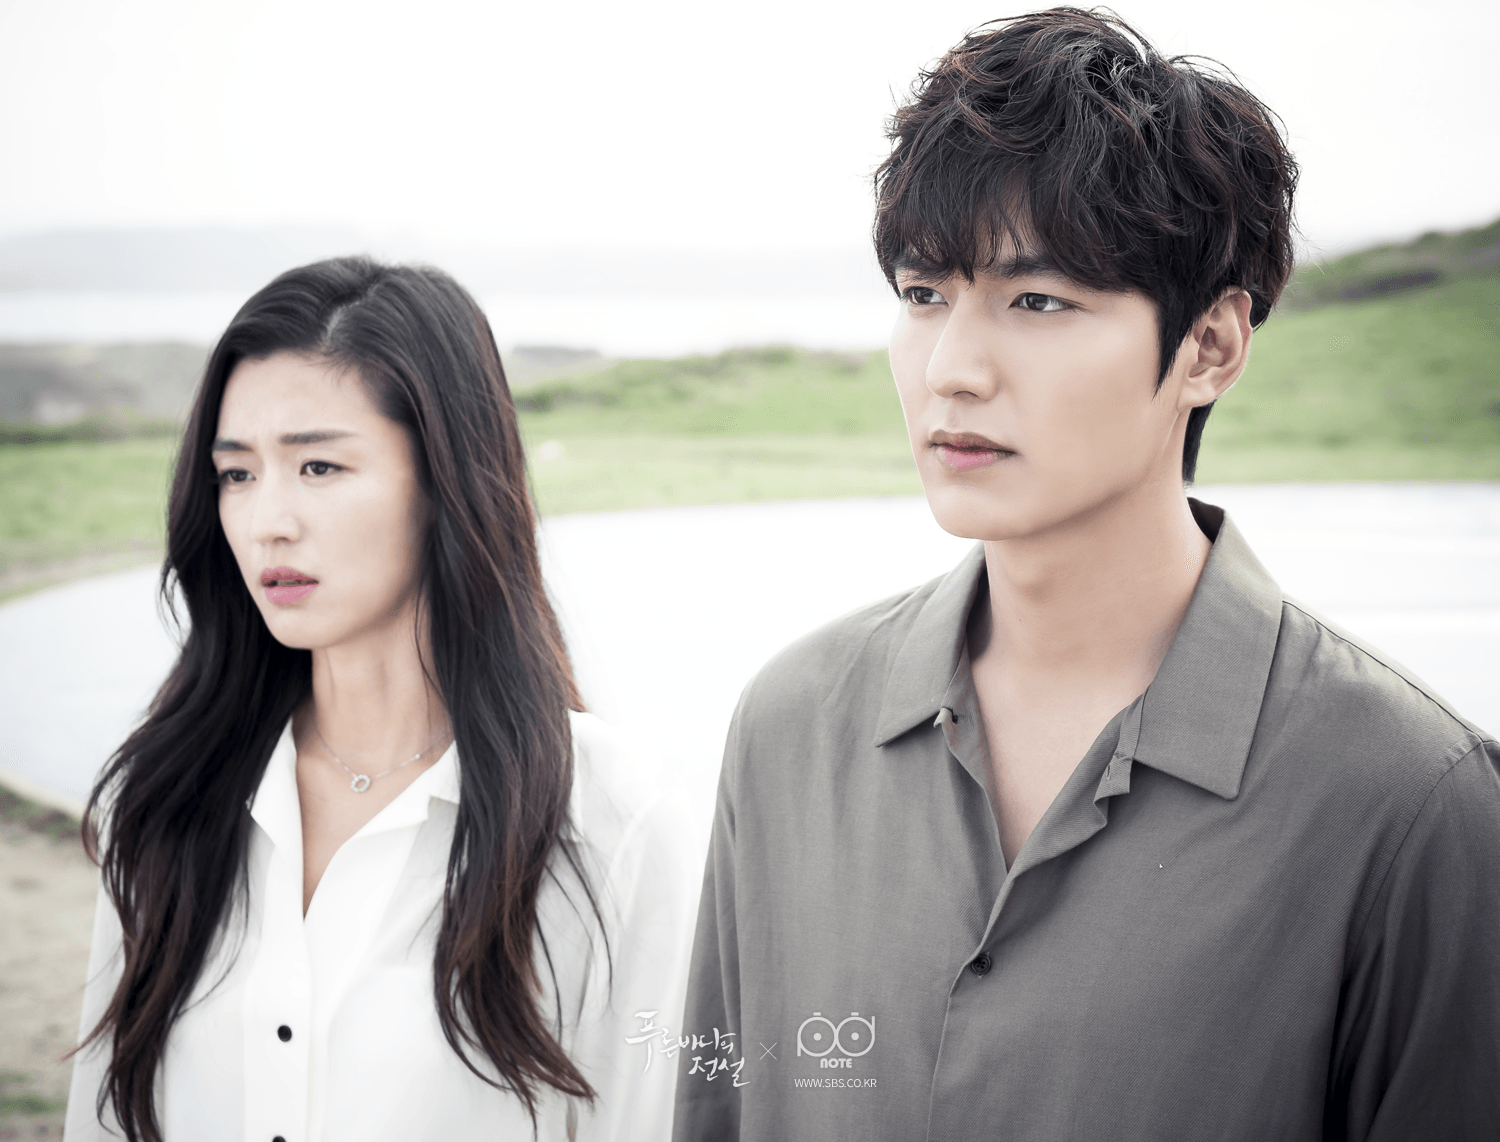 Jeon Ji-hyun and Lee Min-ho in Legend of the Blue Sea